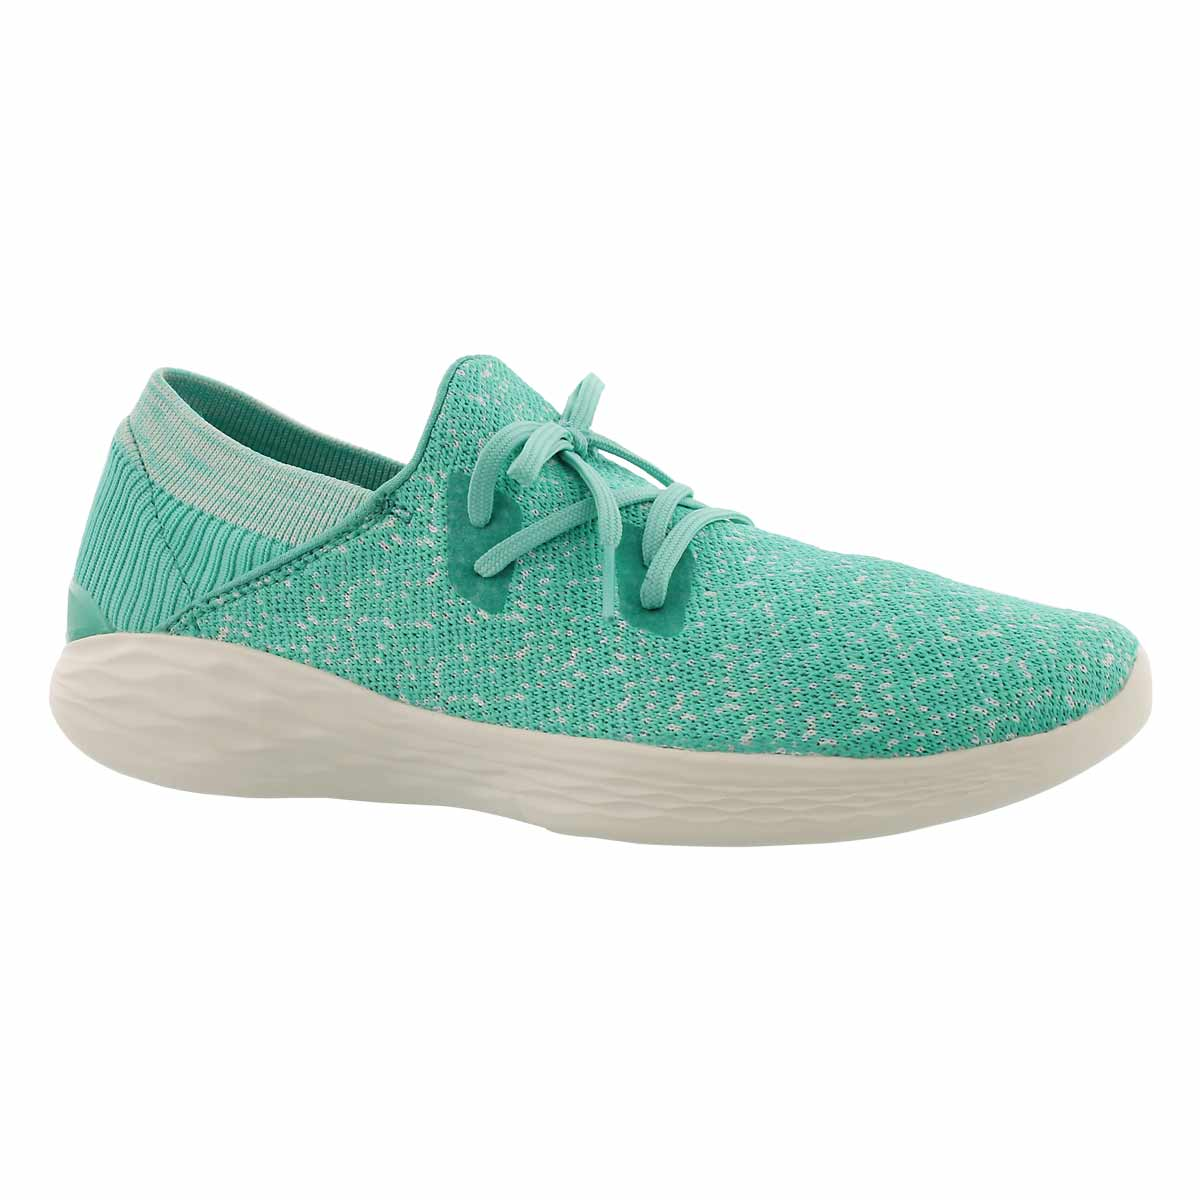 Women's YOU EXHALE mint slip on sneakers